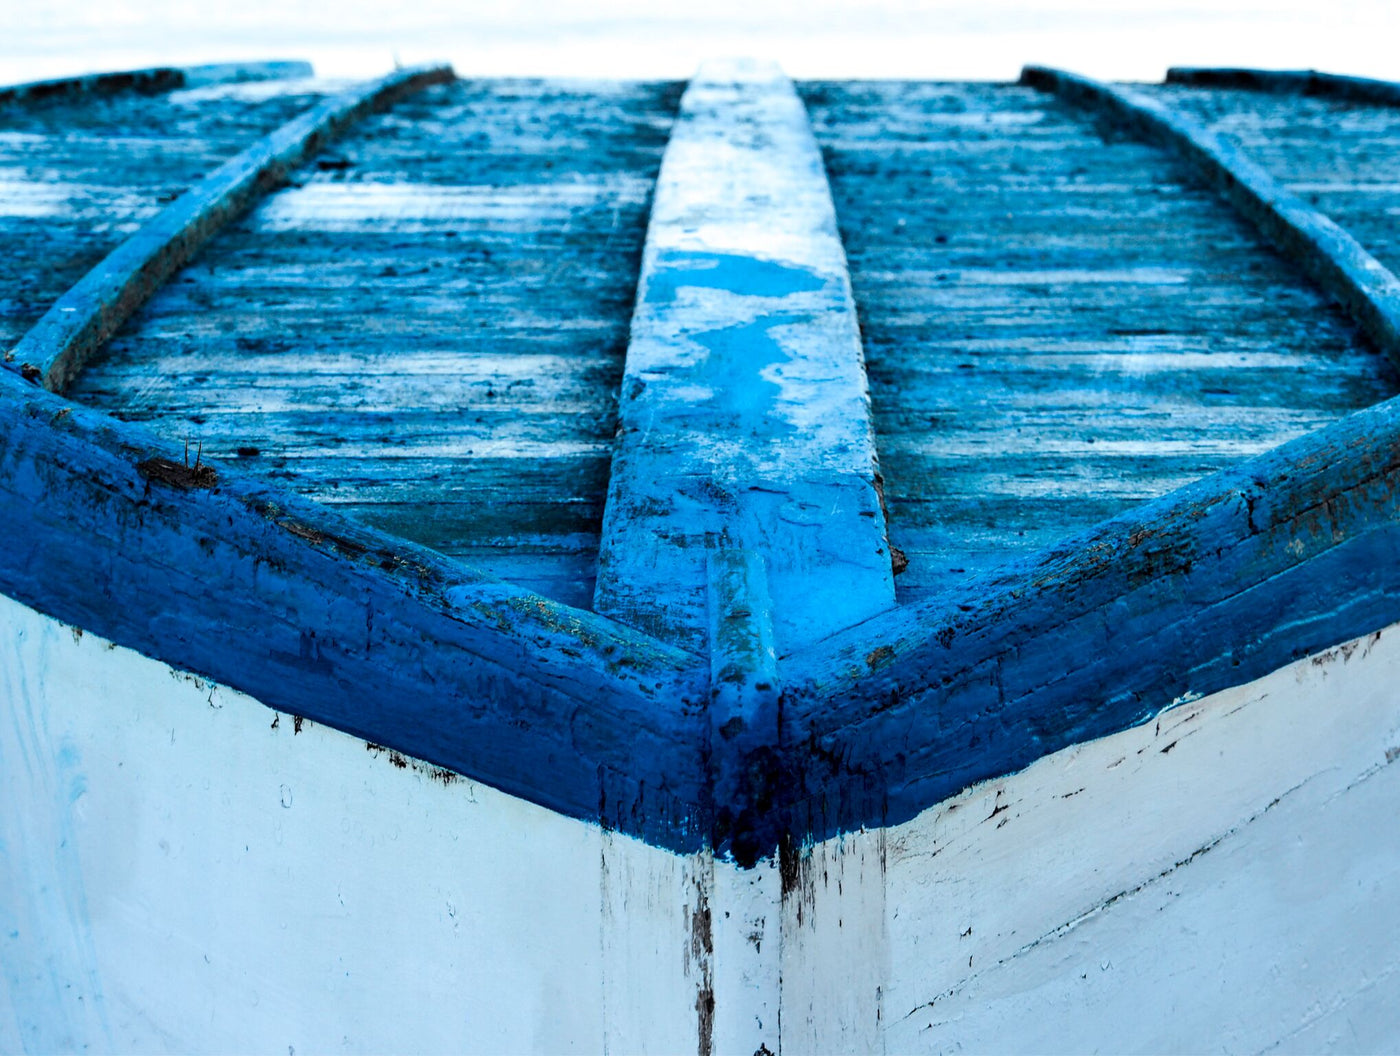 Blue & White Boat